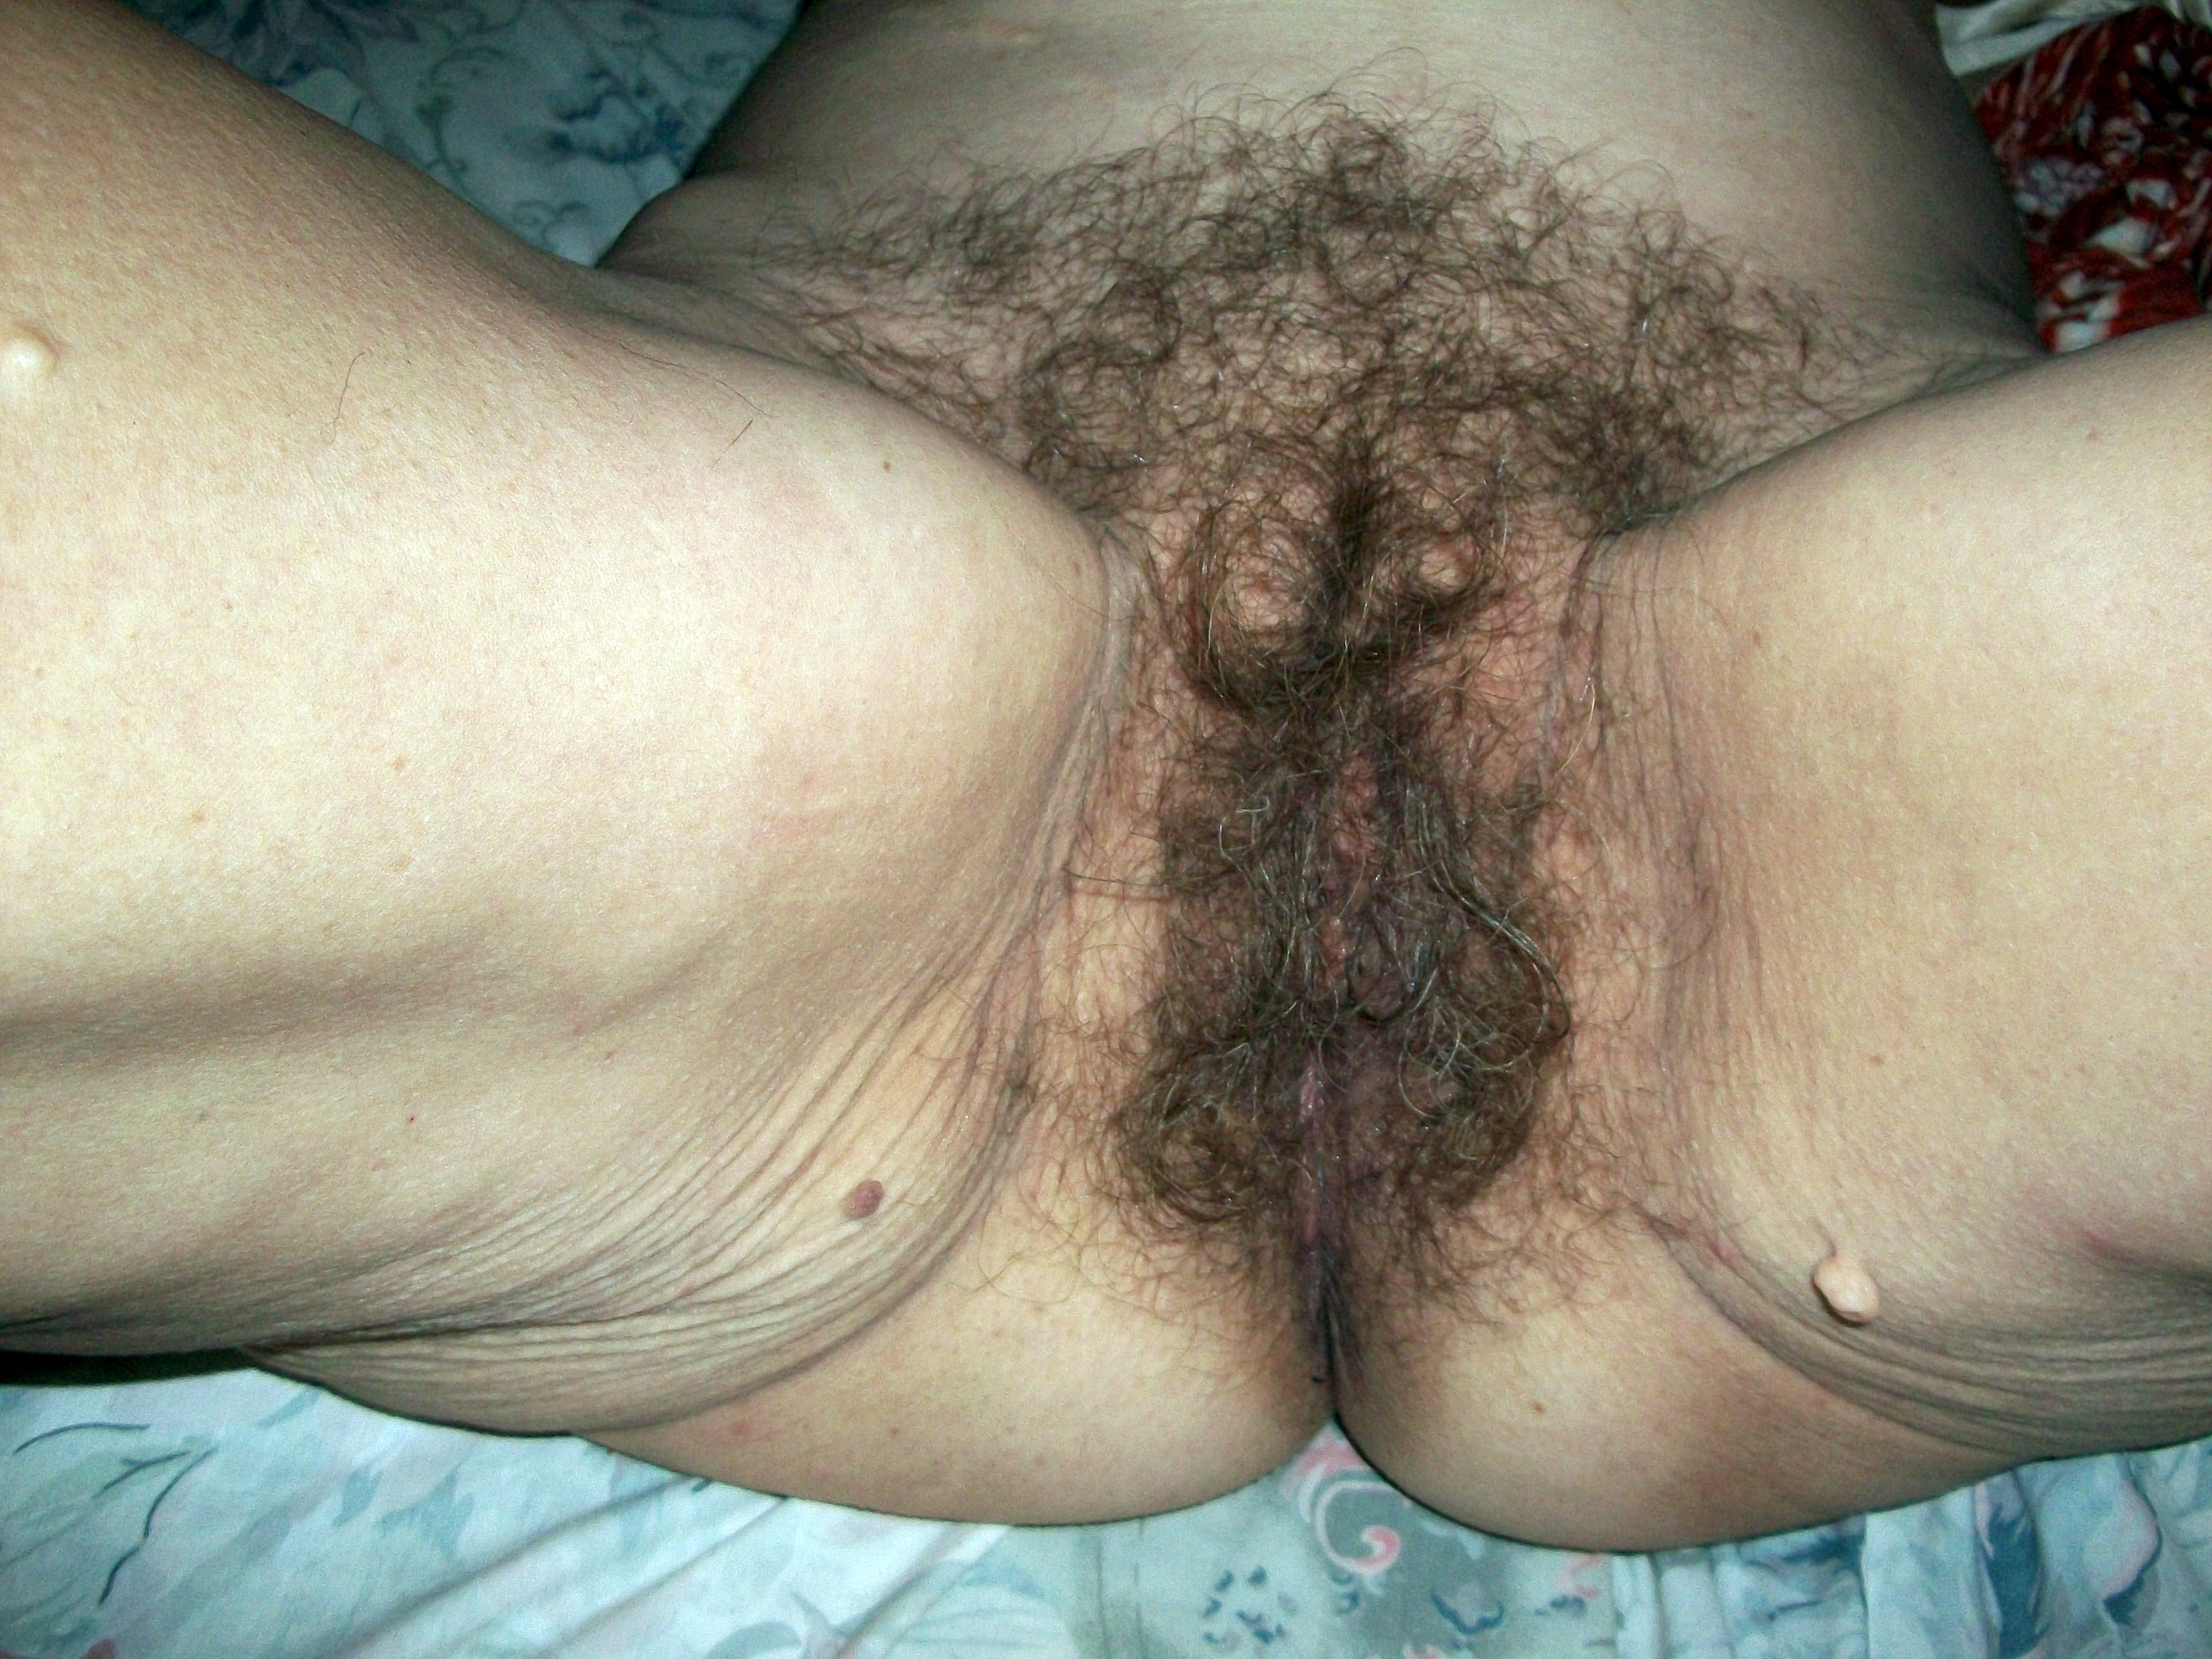 Shaved or unshaved vaginas